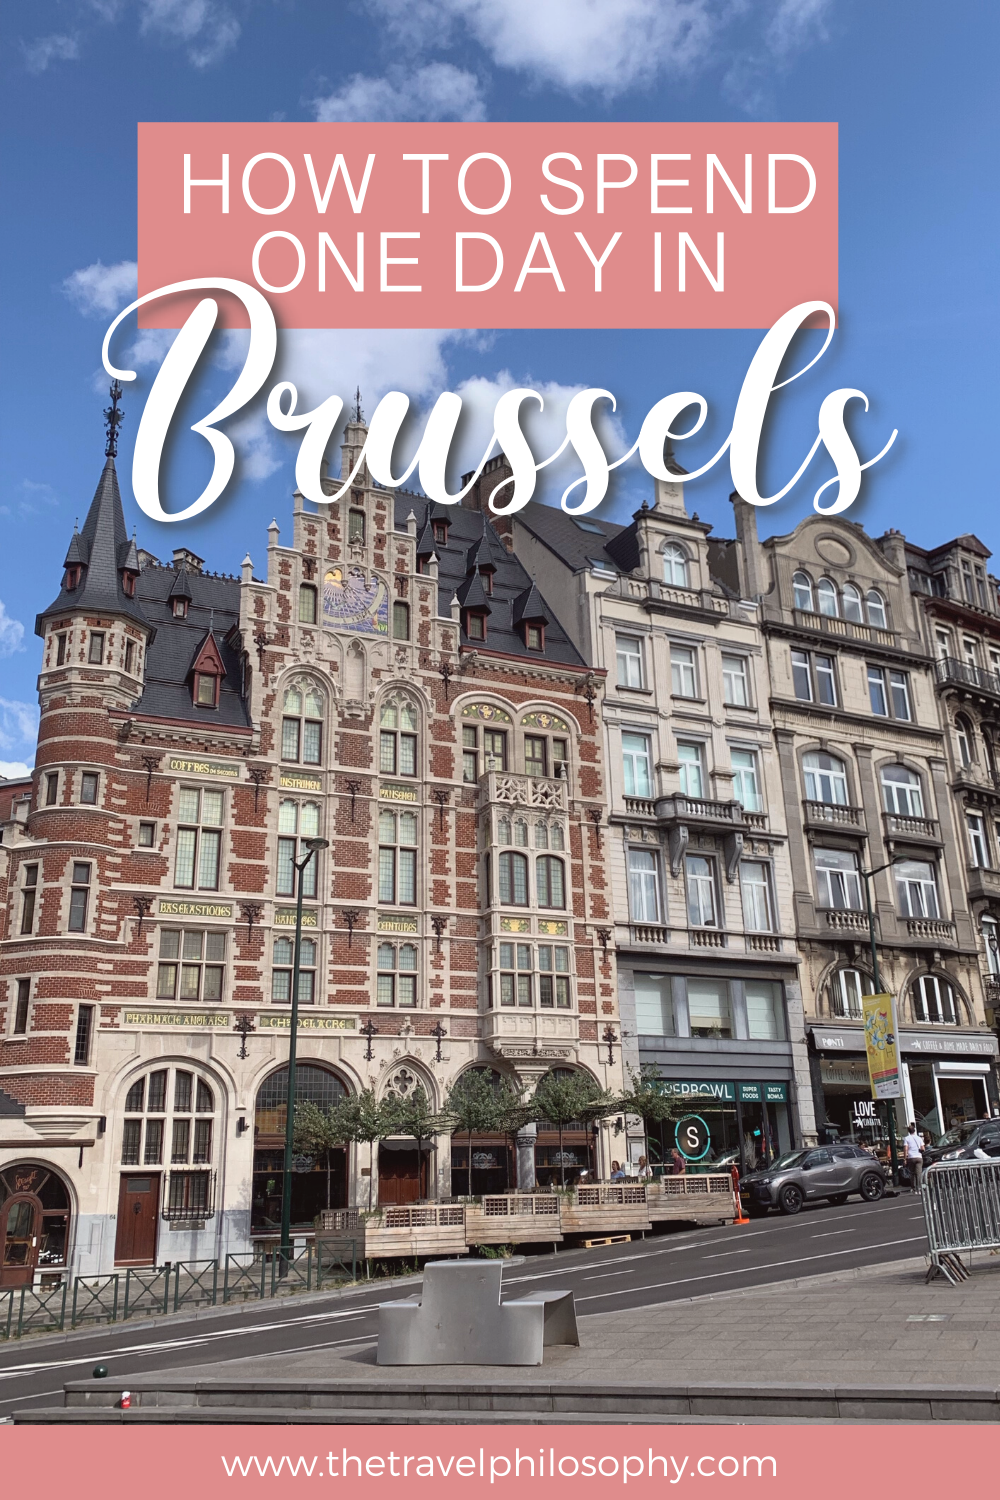 How to Spend One Day in Brussels